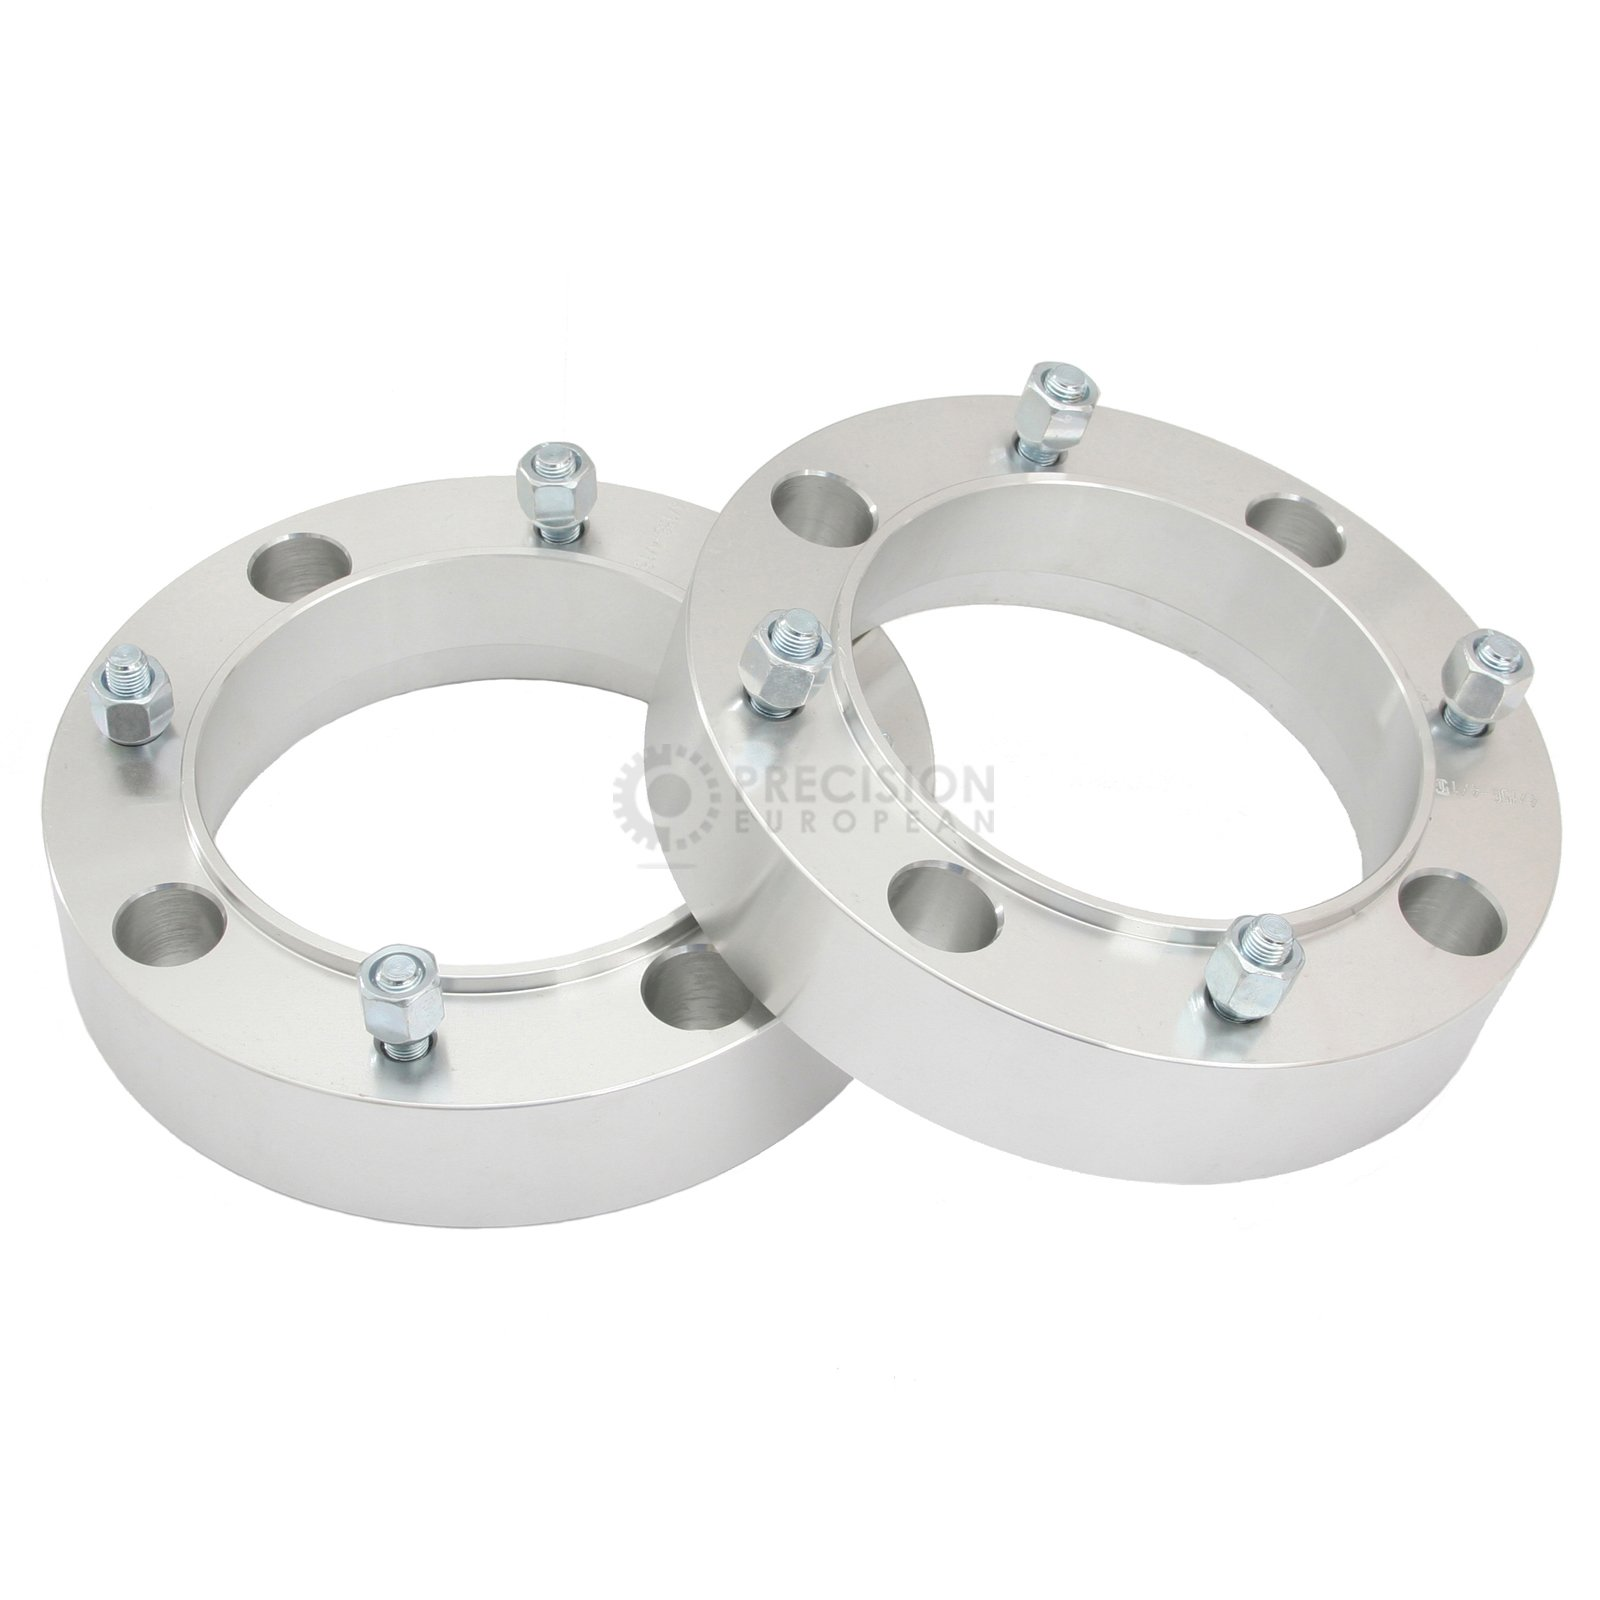 2pc 1'' Thick - 4x156 ATV Wheel Spacers with 3/8'' Studs (Cone Seat Nuts) for many Polaris & Kawasaki: Outlaw (Front Only) Predator Ranger RZR Sportsman XP Lakota Mojave Tecate (4/156) Silver V3